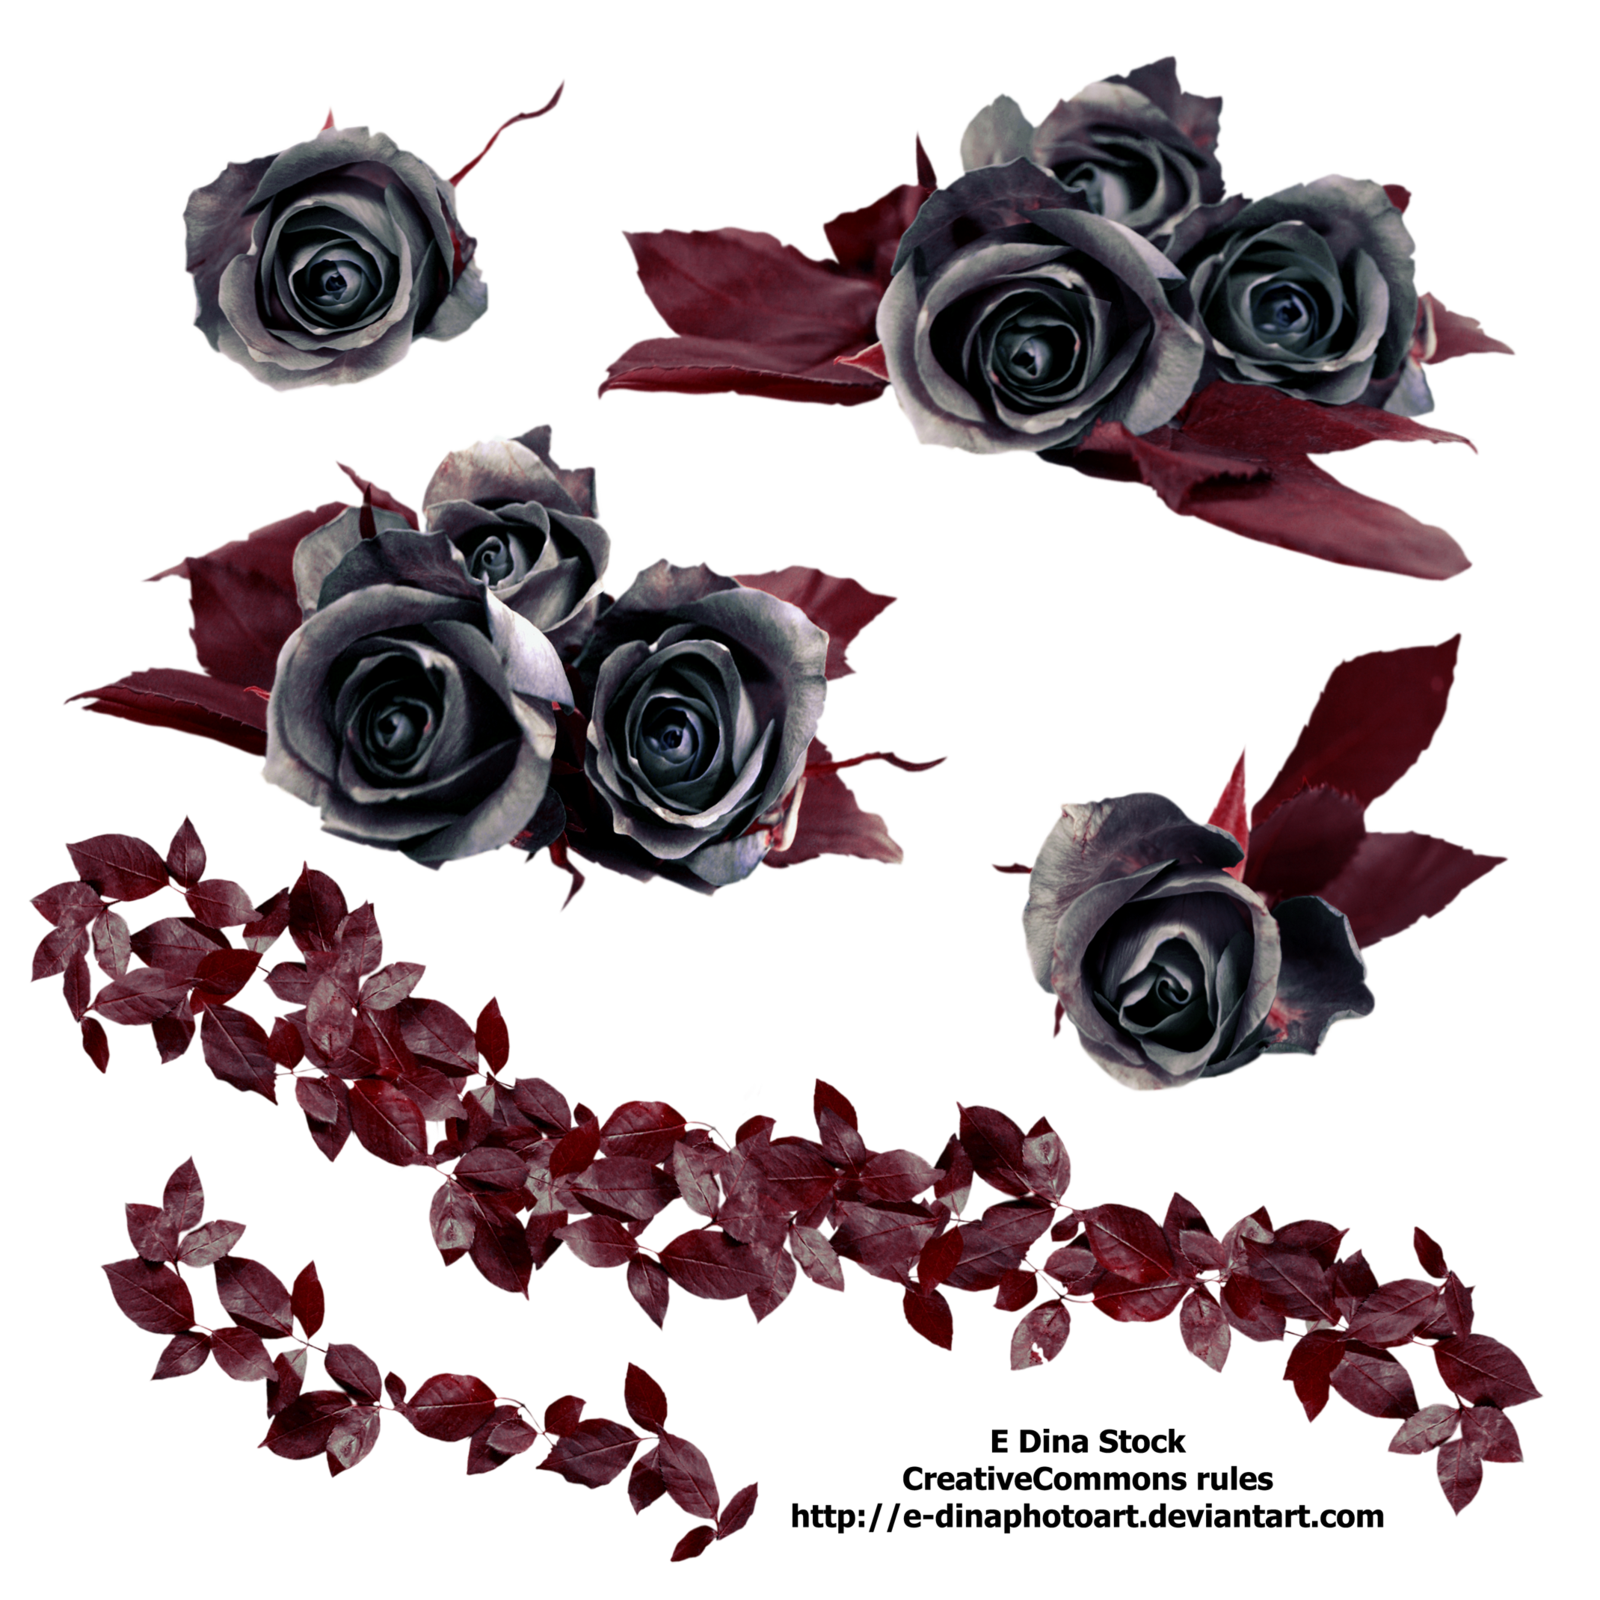 Gothic Rose Free Download PNG Image